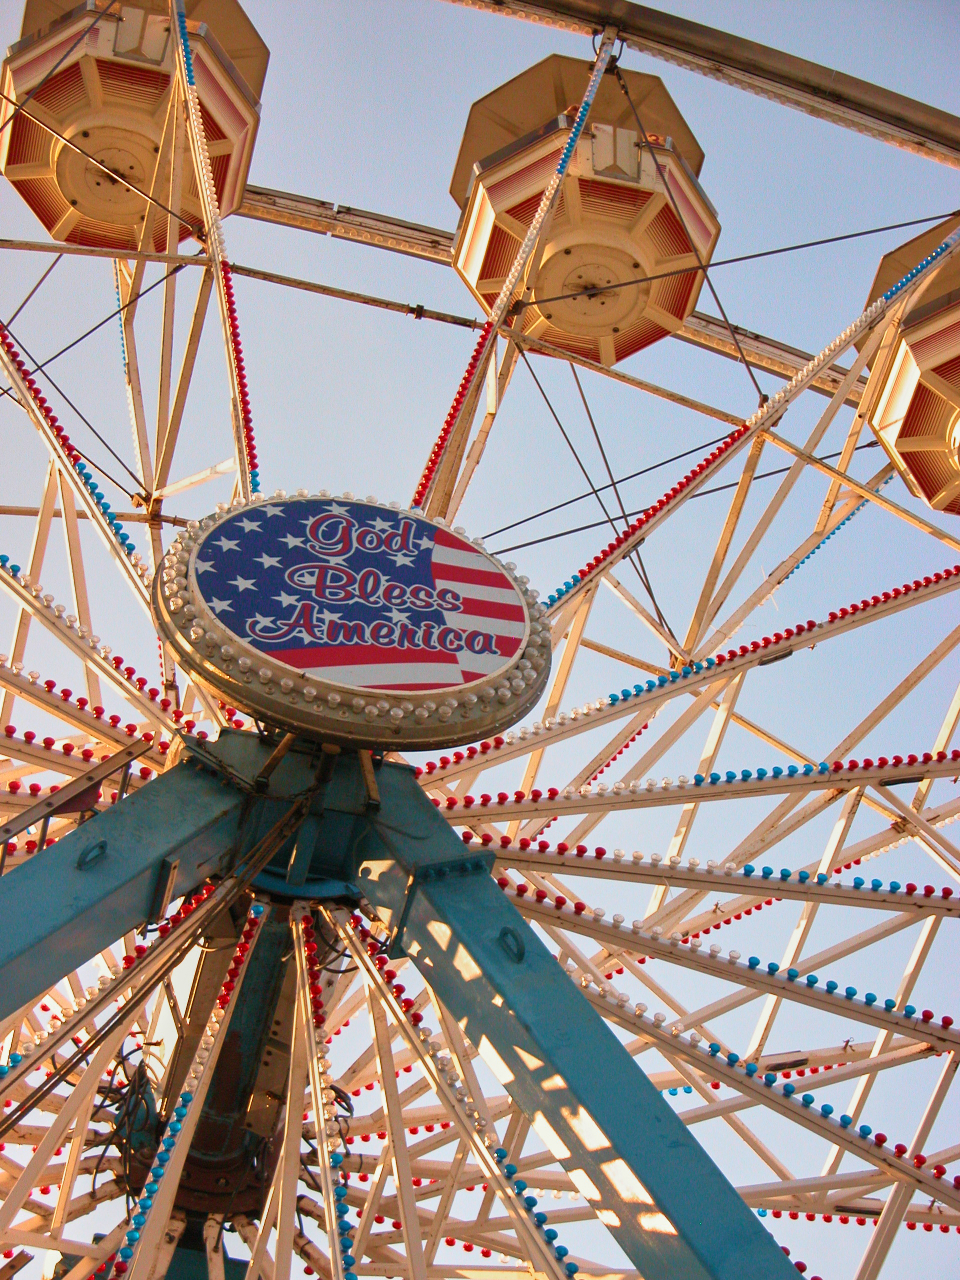 carnival ferris wheel ride fun festival entertainment fairground recreational retro amusement fair sky vintage leisure play tall blue america flag